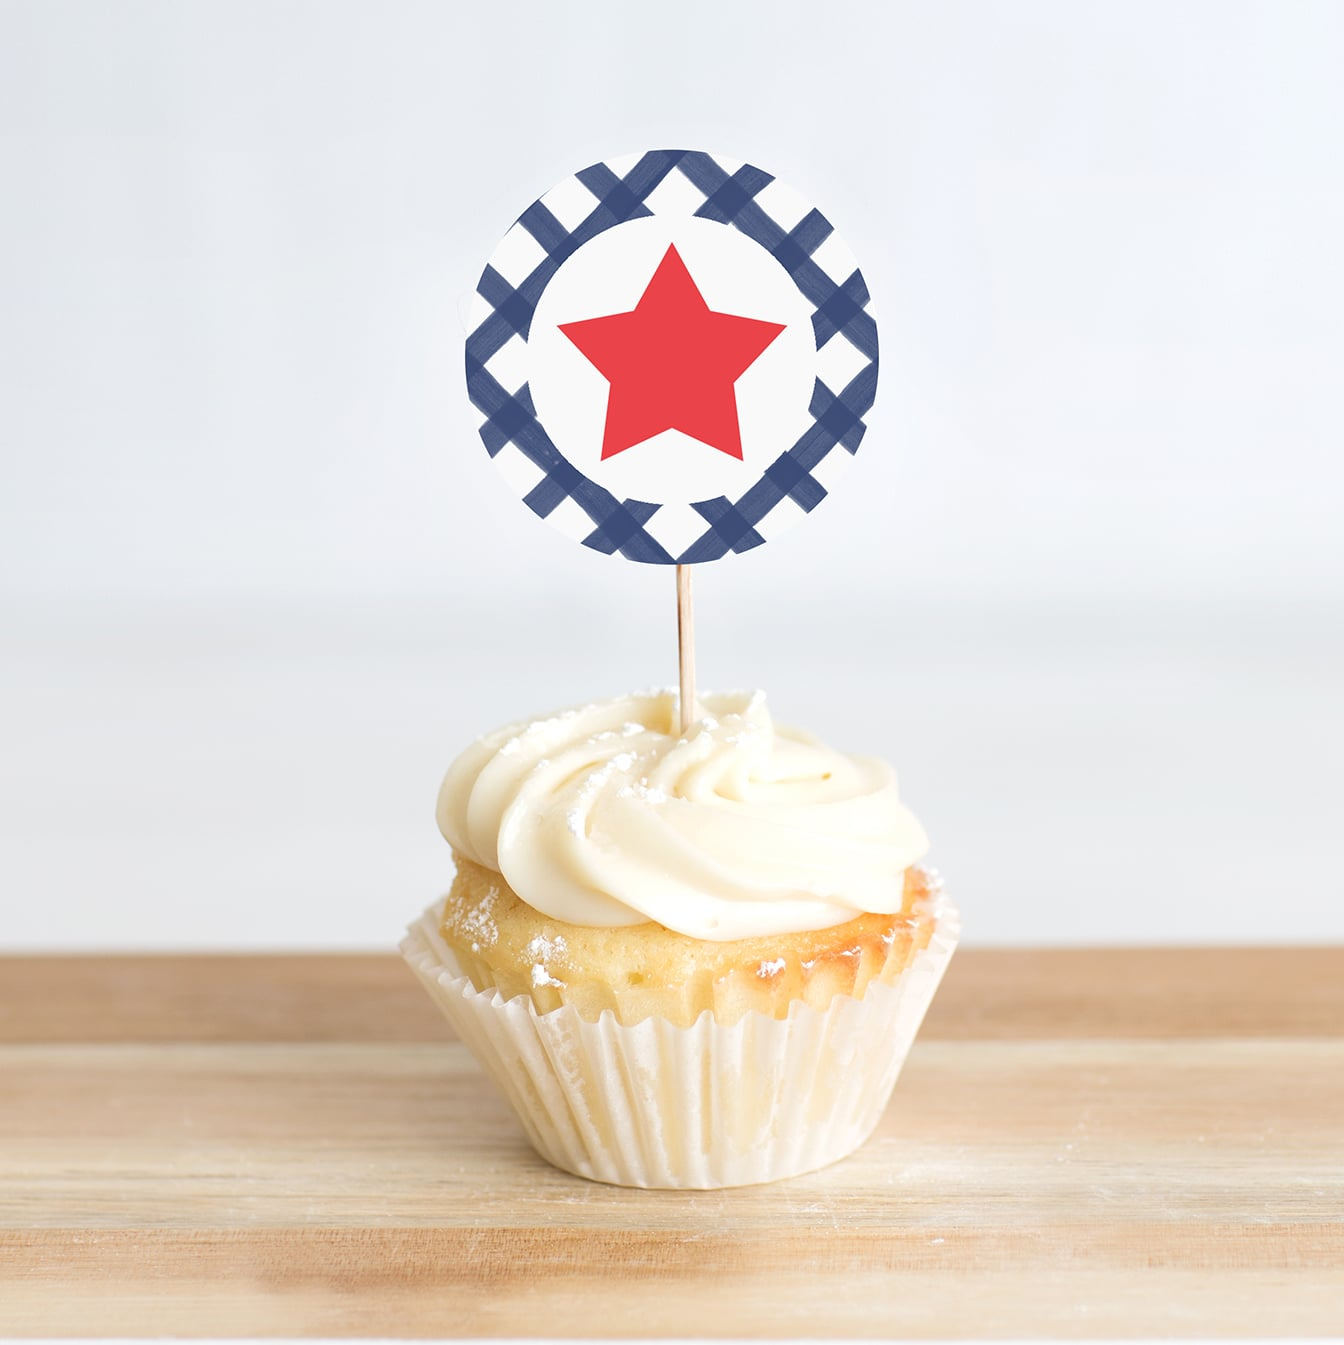 photograph relating to Cupcake Printable identified as Cost-free Patriotic Printable Cupcake Toppers - 4th of July